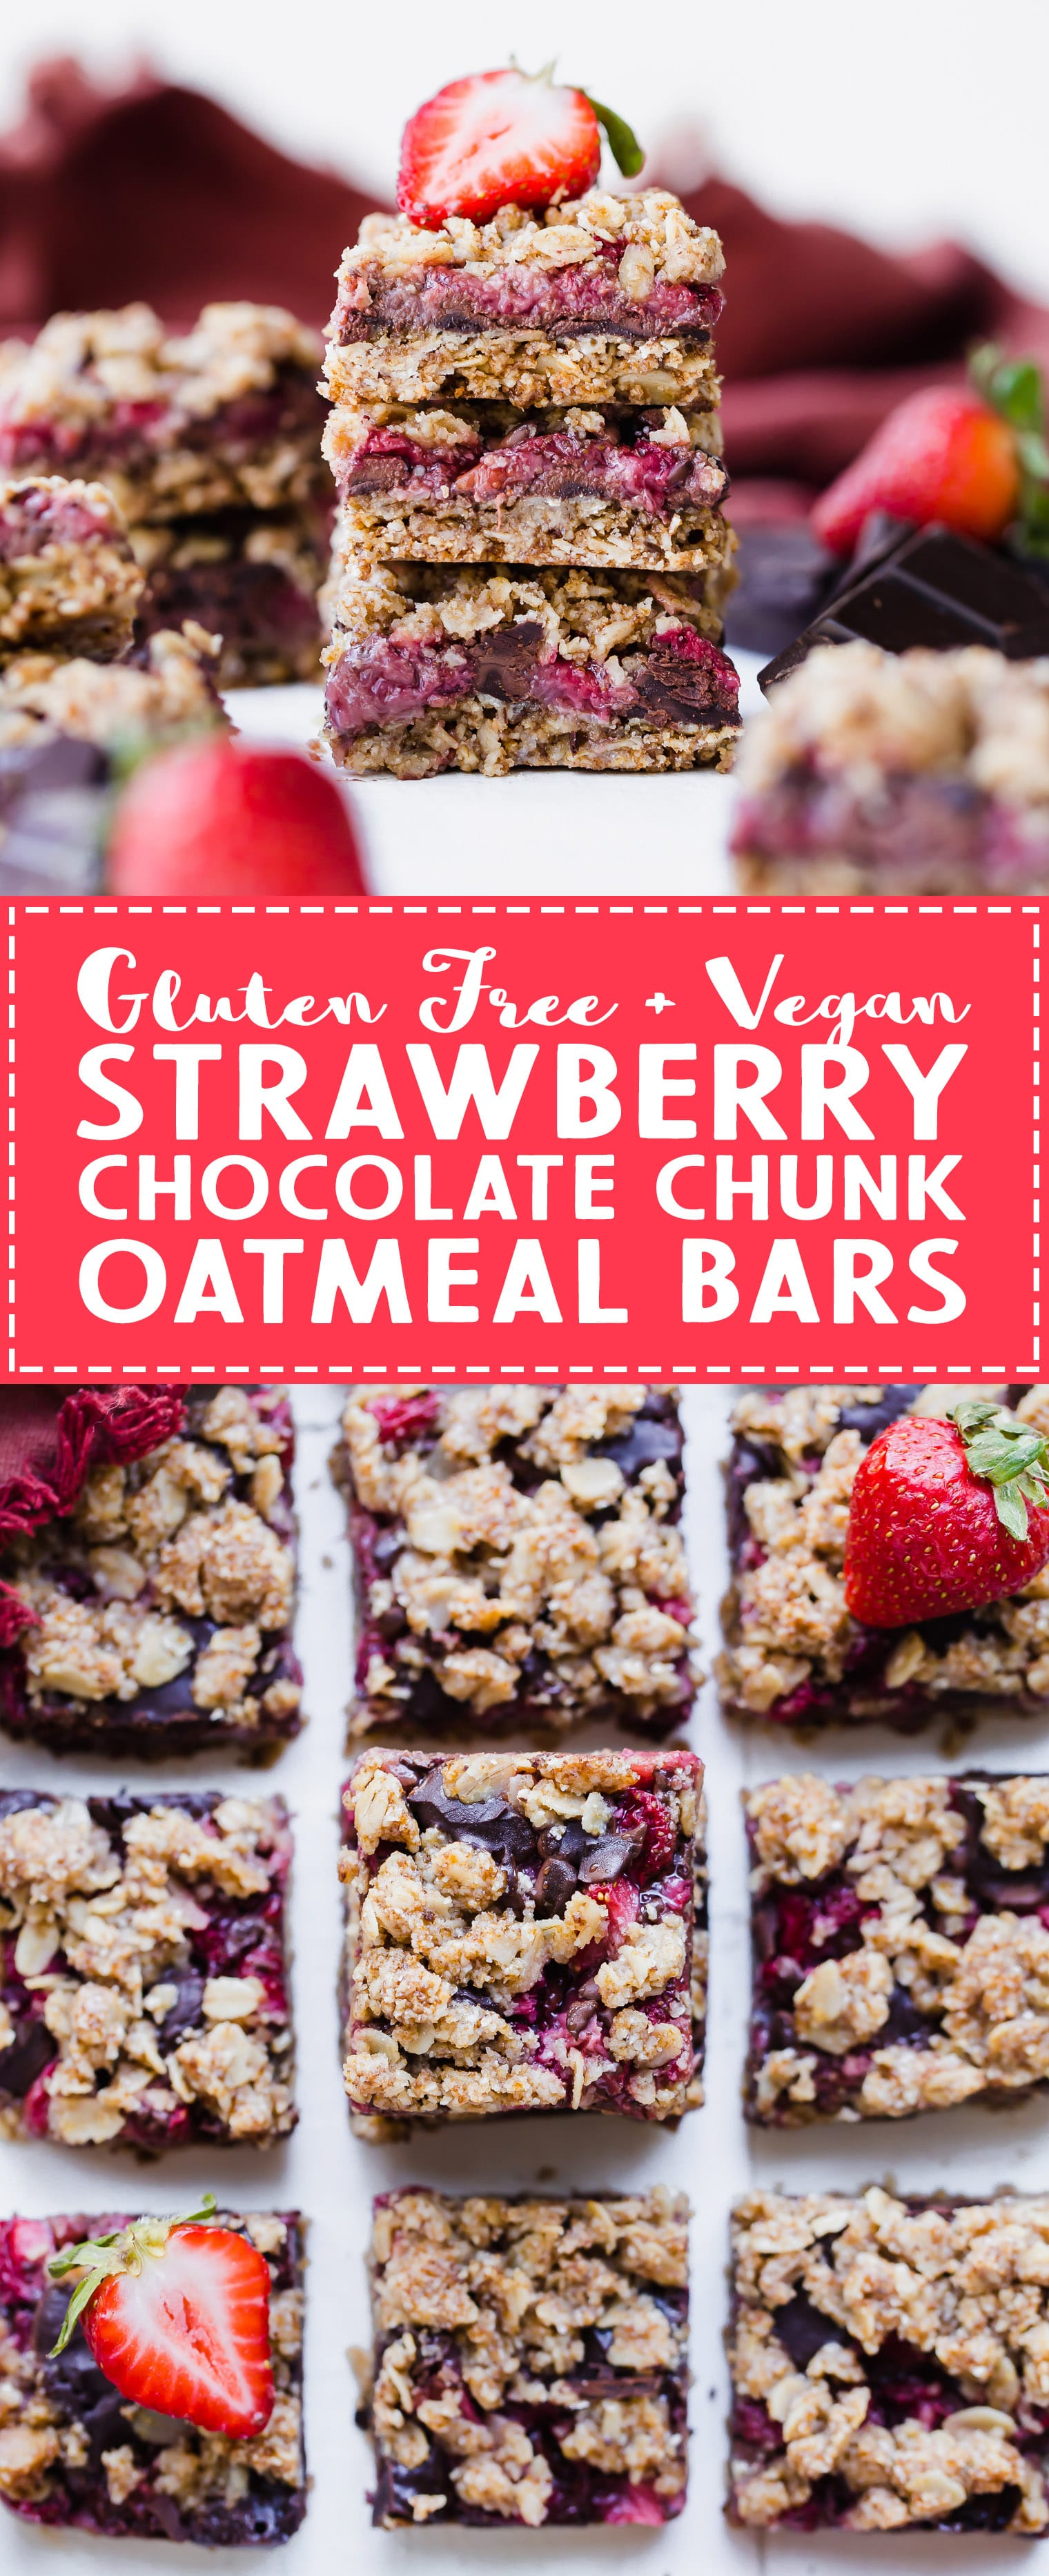 These Strawberry Chocolate Chunk Oatmeal Bars have an oatmeal cookie crust and crumble, filled with fresh strawberries and dark chocolate chunks - it makes for an irresistibly delicious treat! These oatmeal bars are gluten-free, refined sugar-free, and vegan.